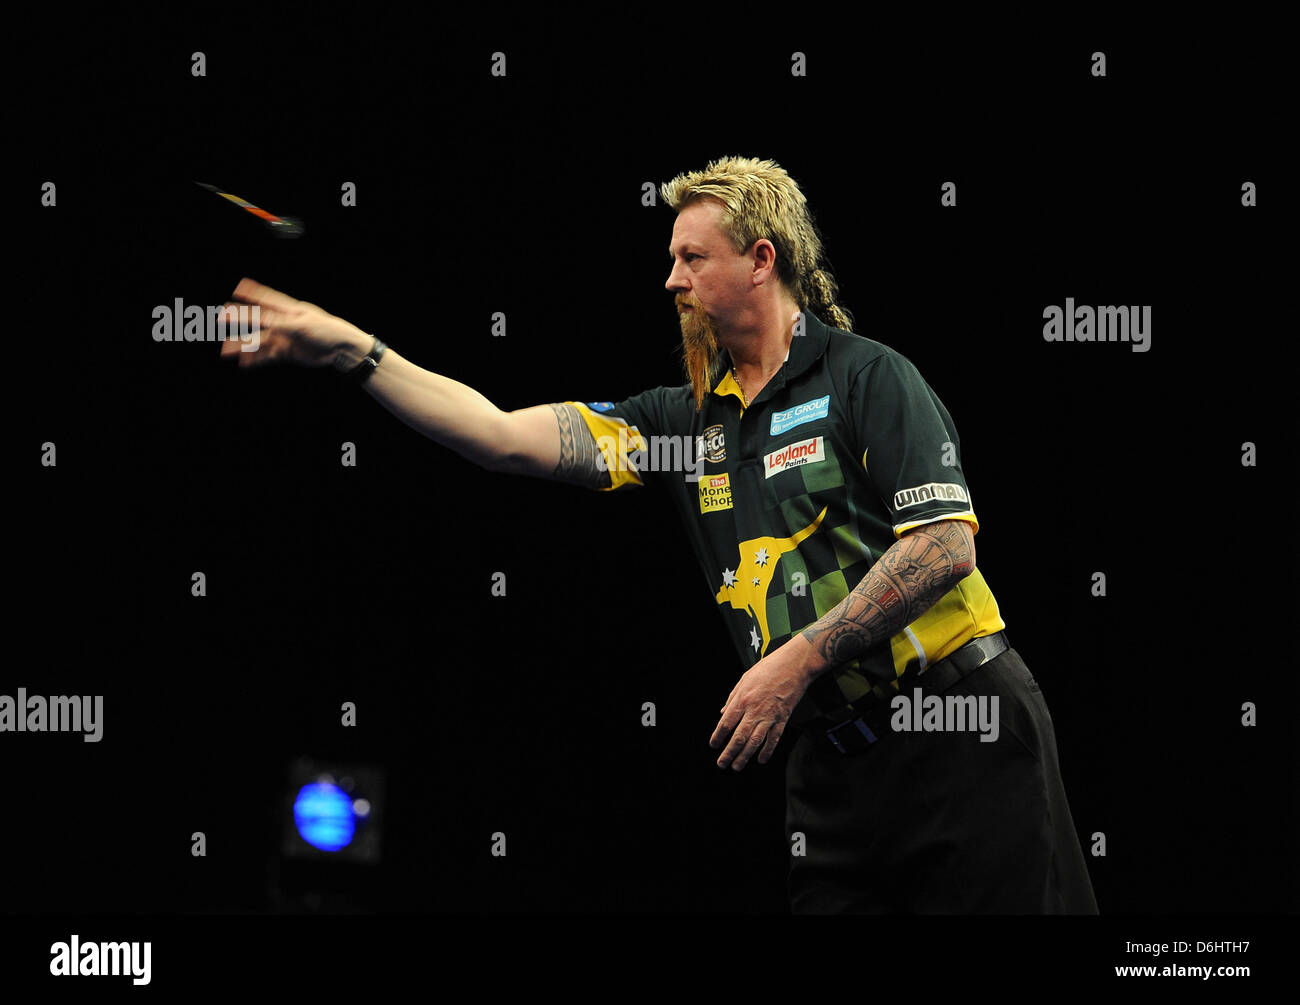 18.04.2013 Dublin, Ireland.  round Eleven of the Premier League Darts from The O2 in Dublin. - Stock Image